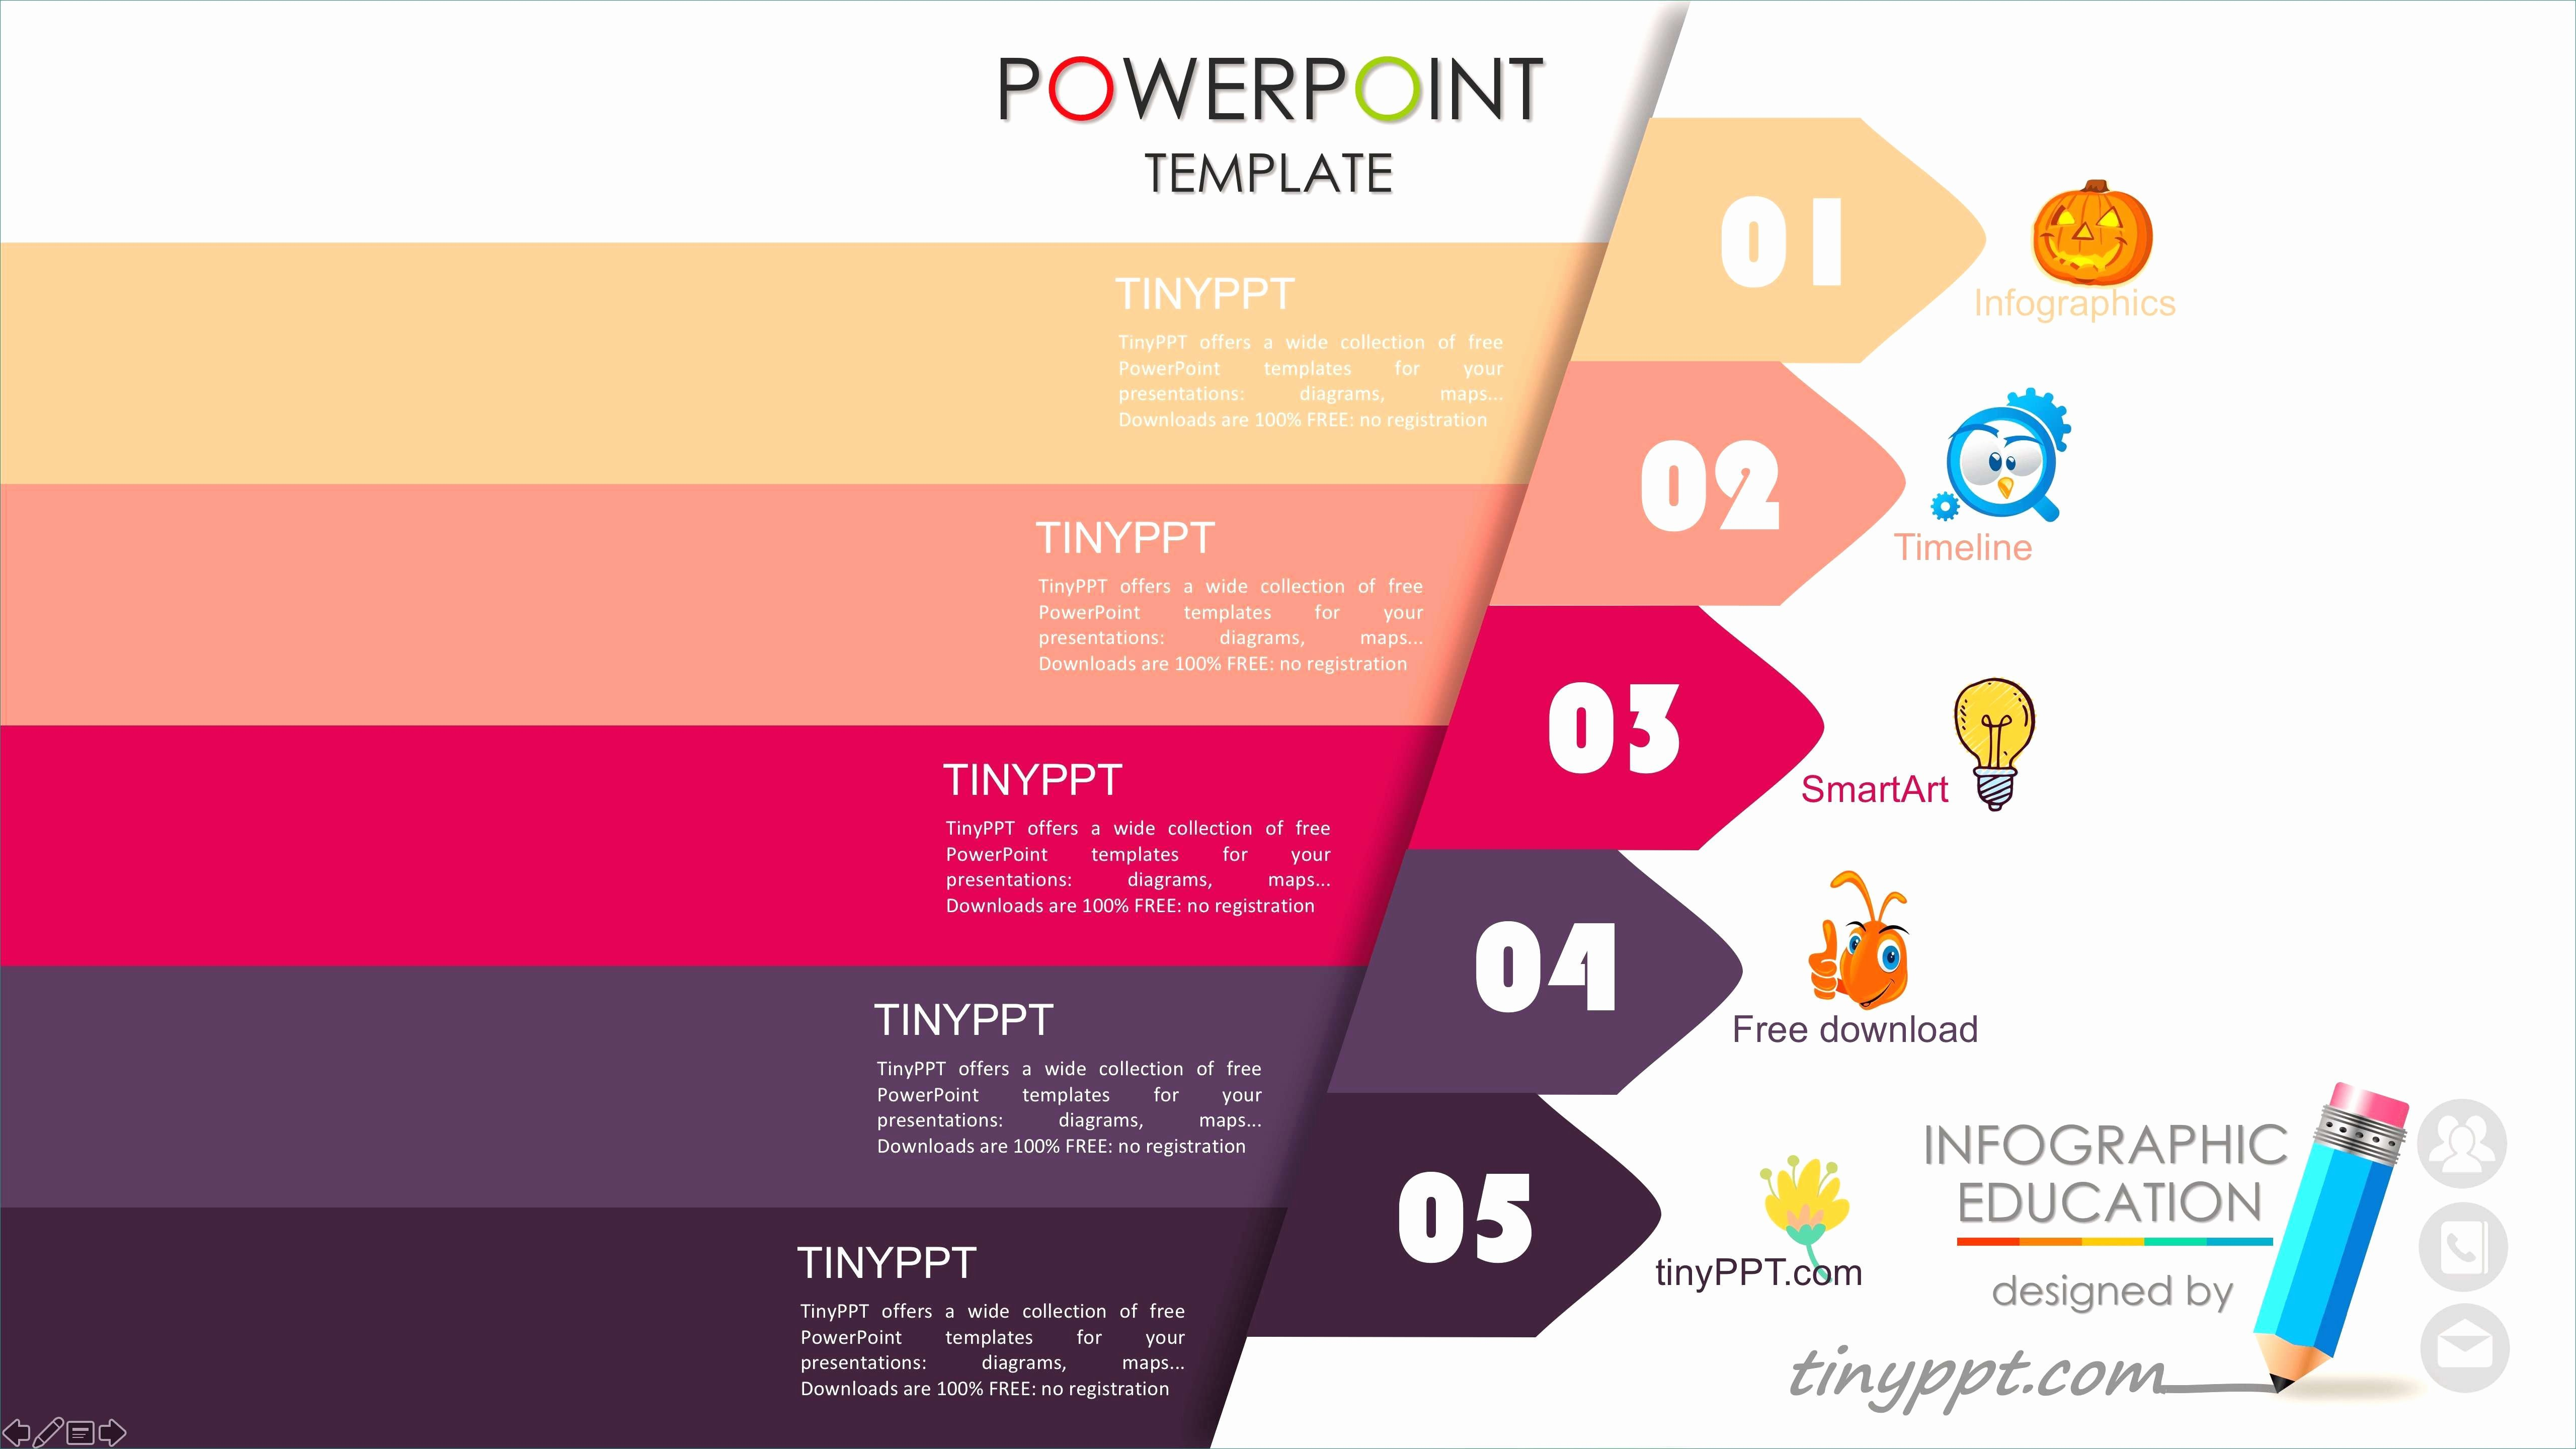 Powerpoint Business Card Template Luxury Powerpoint Business Card Template Briliant Interactive